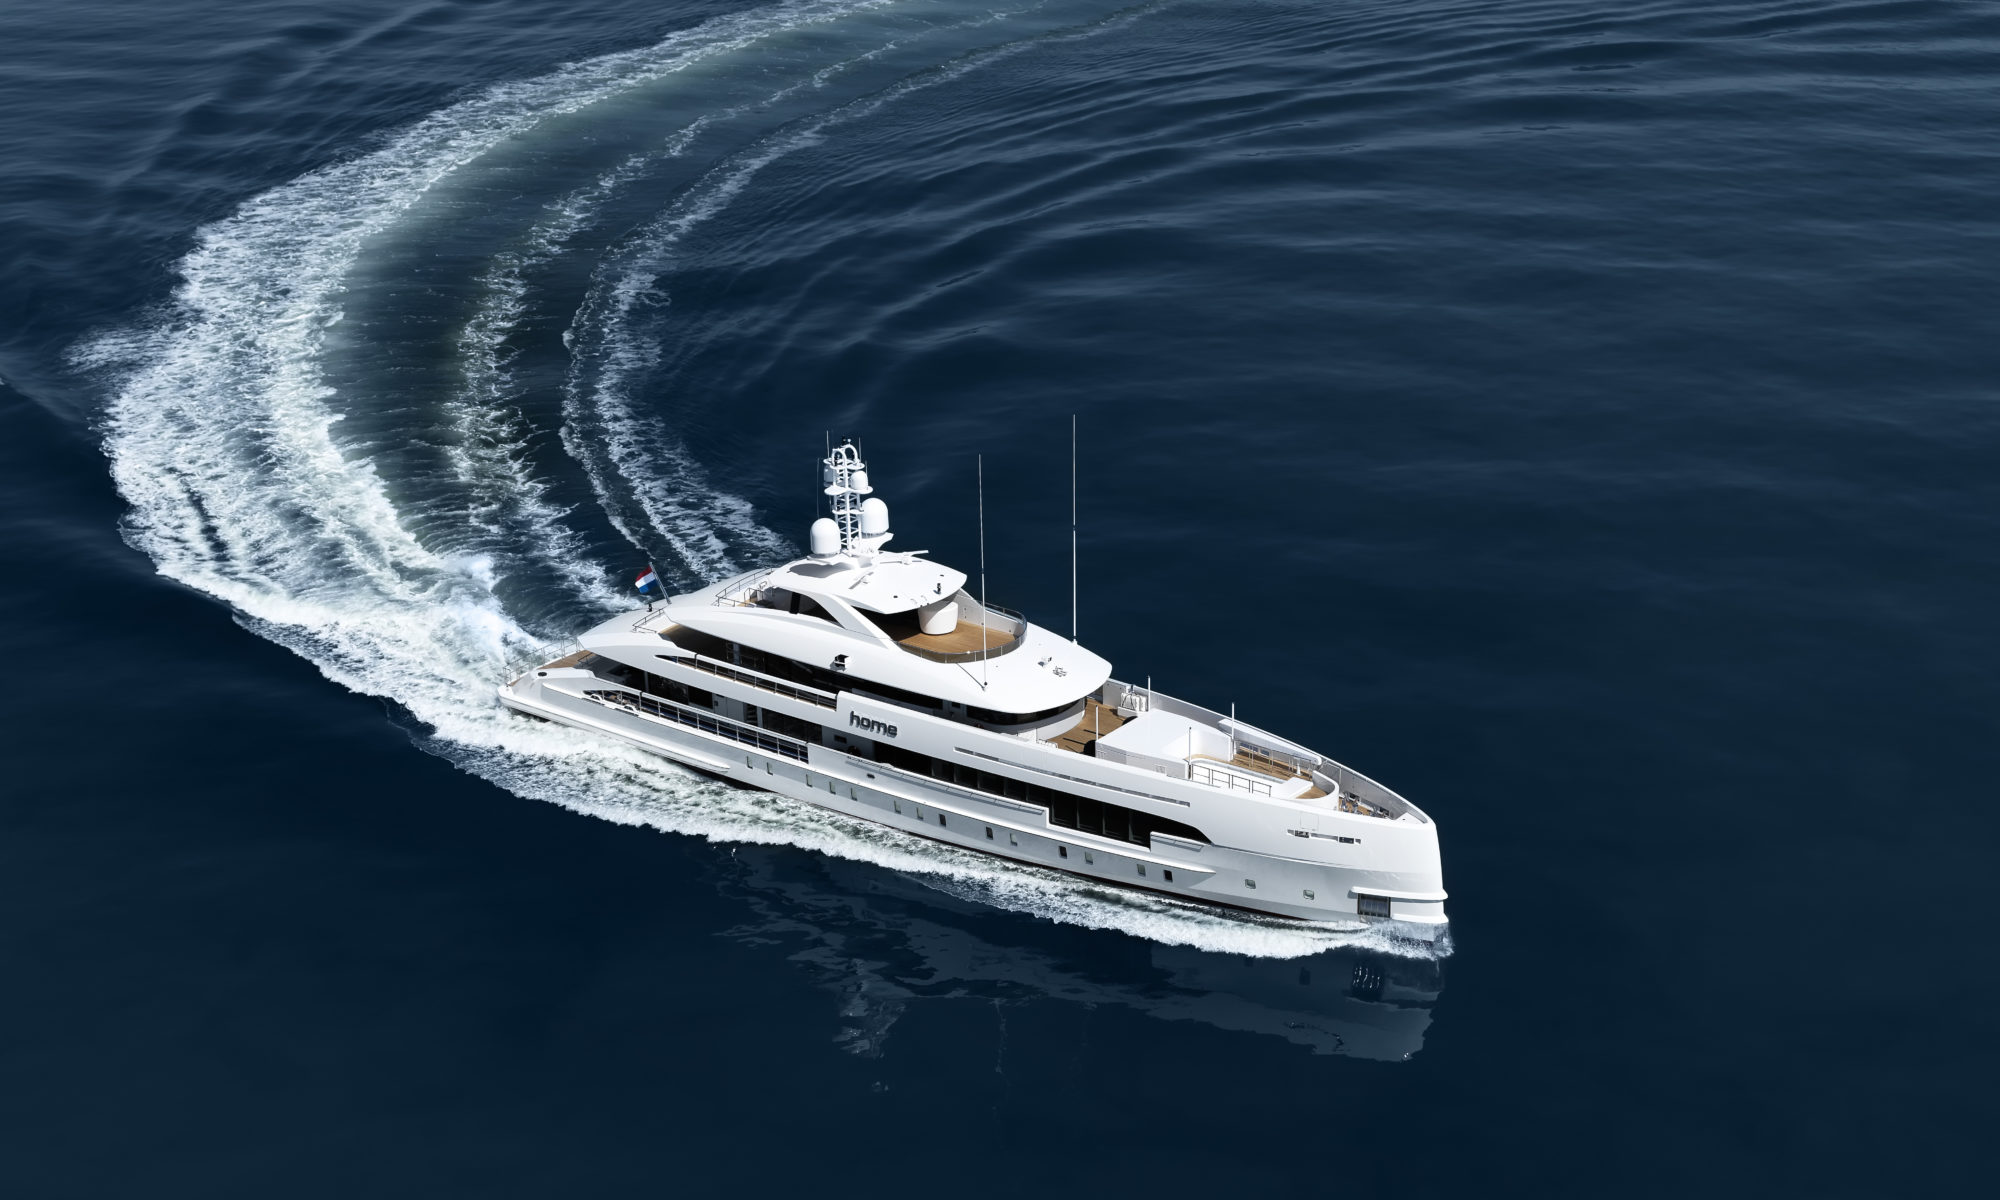 Home (Project Nova)  Picture: Dick Holthuis/ Heesen Yachts